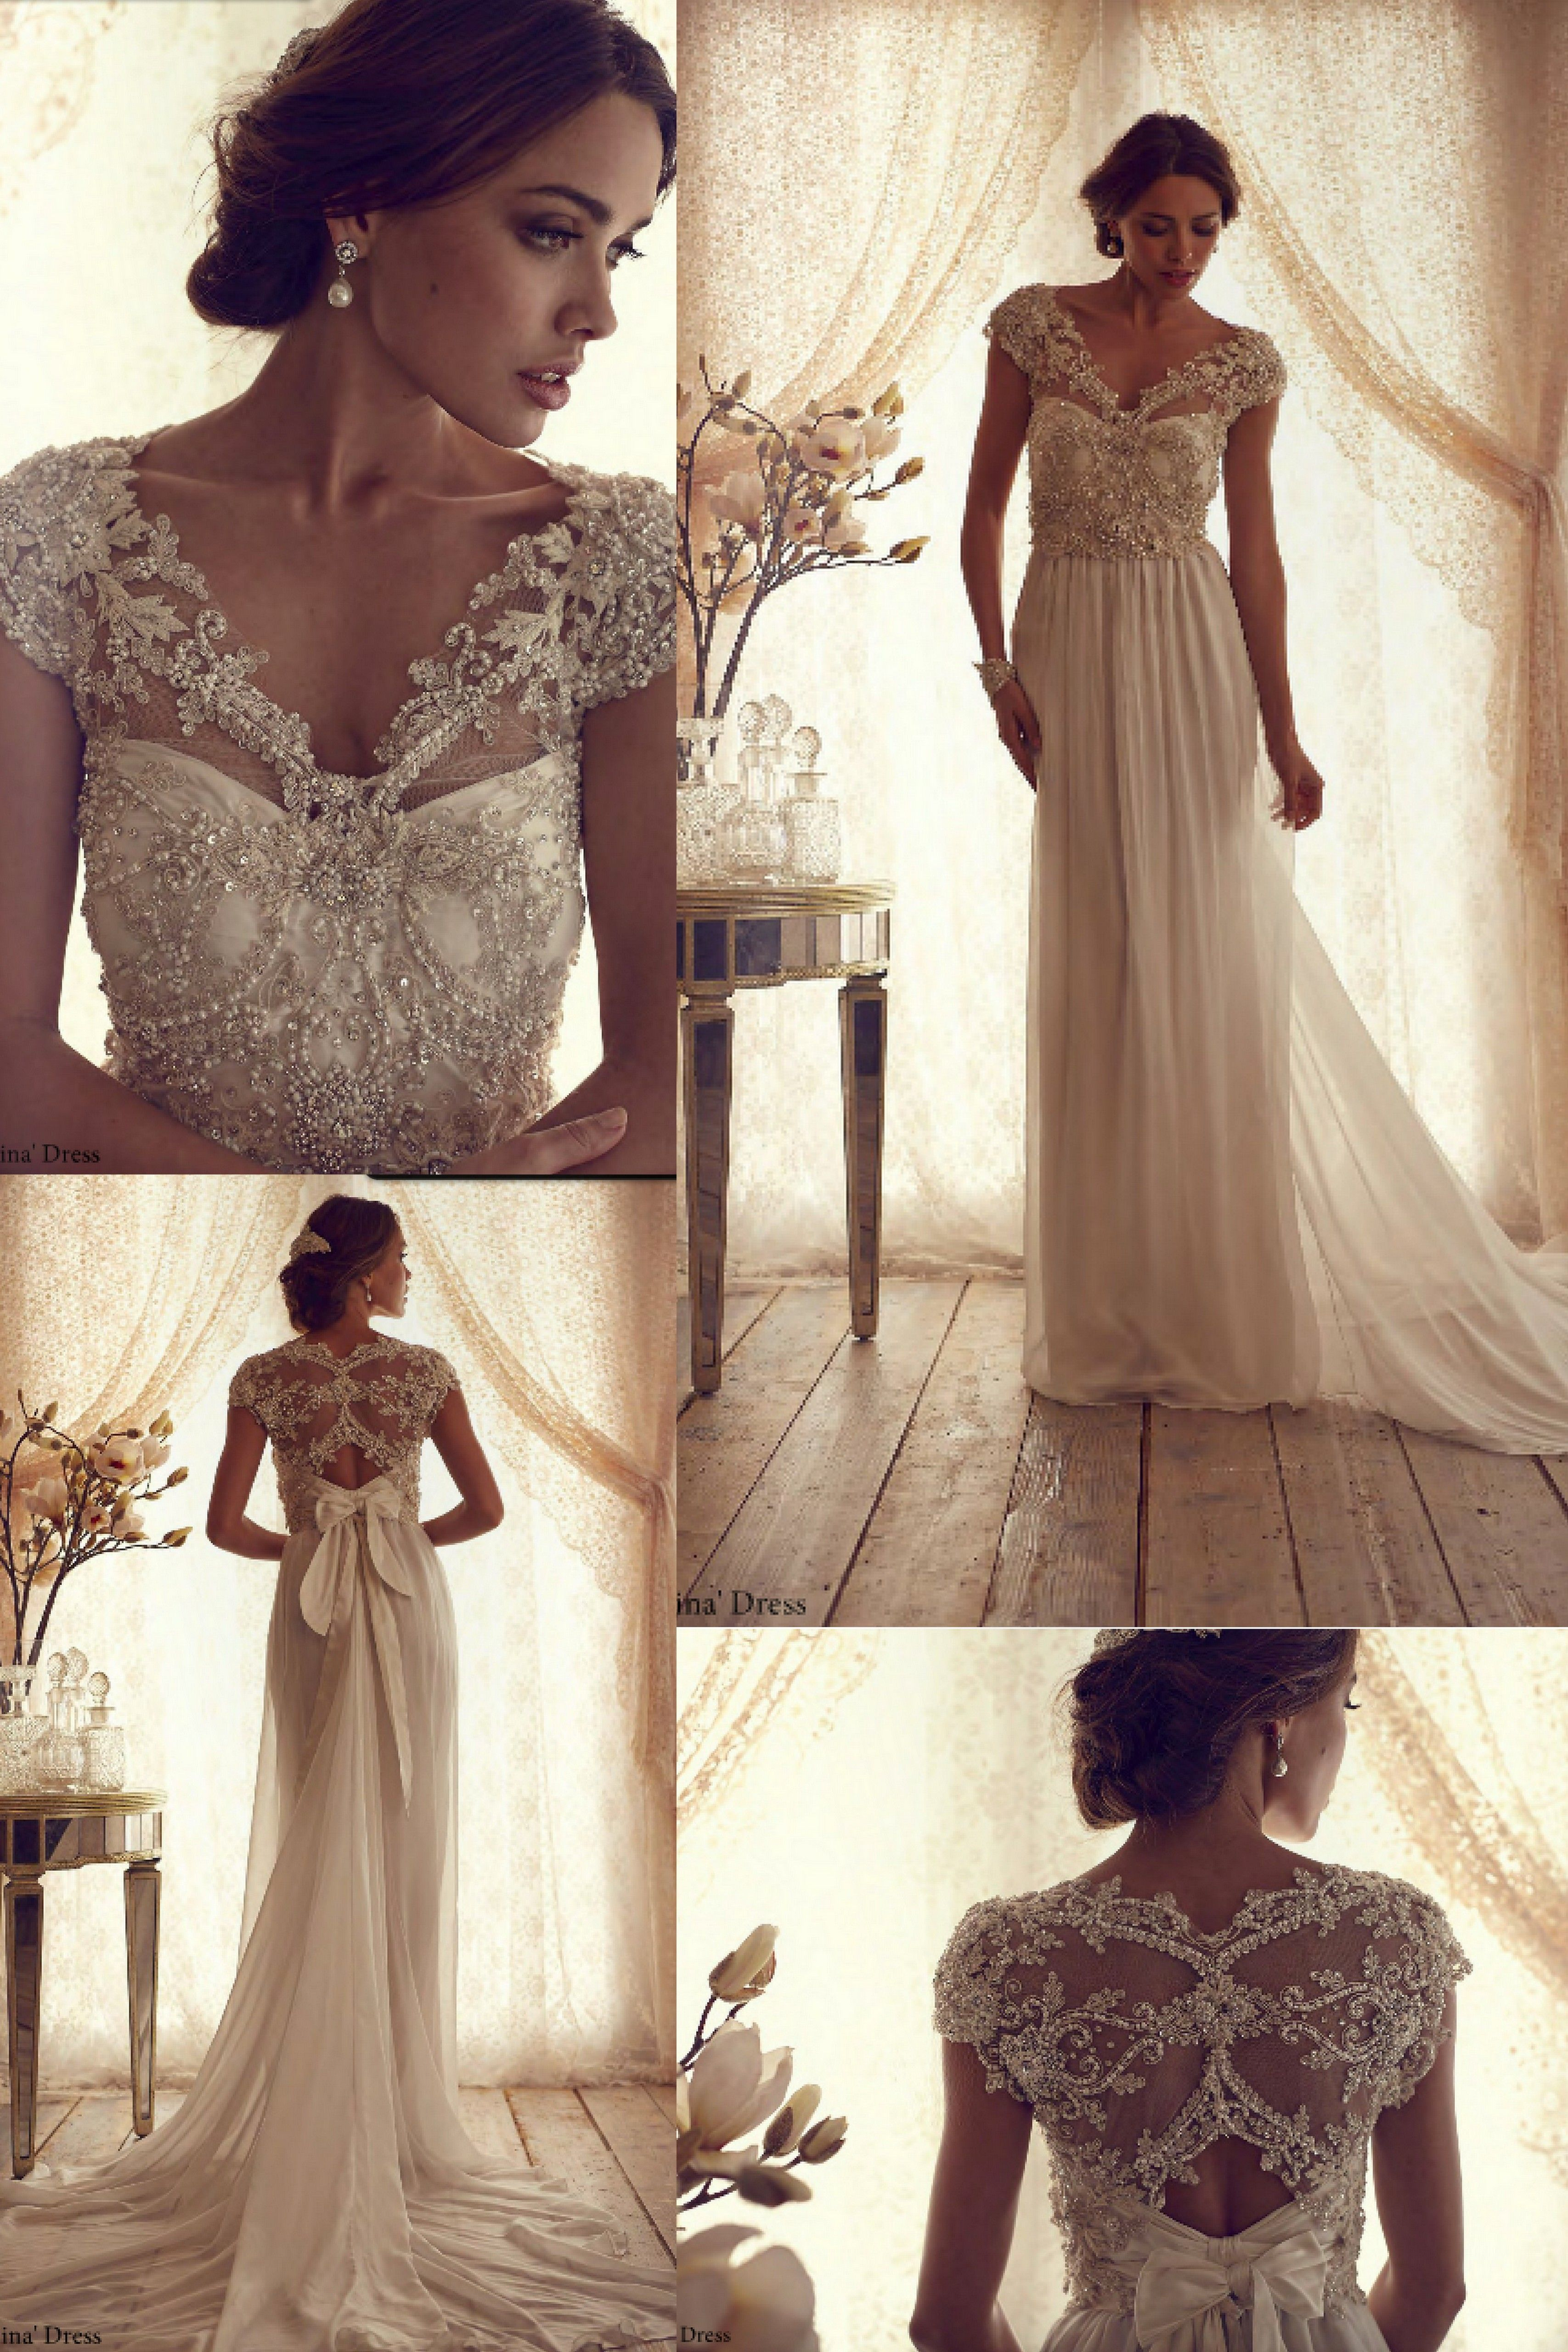 This Is My Wedding Dress I Came To Tears When I Laid My Eyes On This I Am Definitely Getting This Anna Wedding Dresses Dream Wedding Dresses Carolina Dress